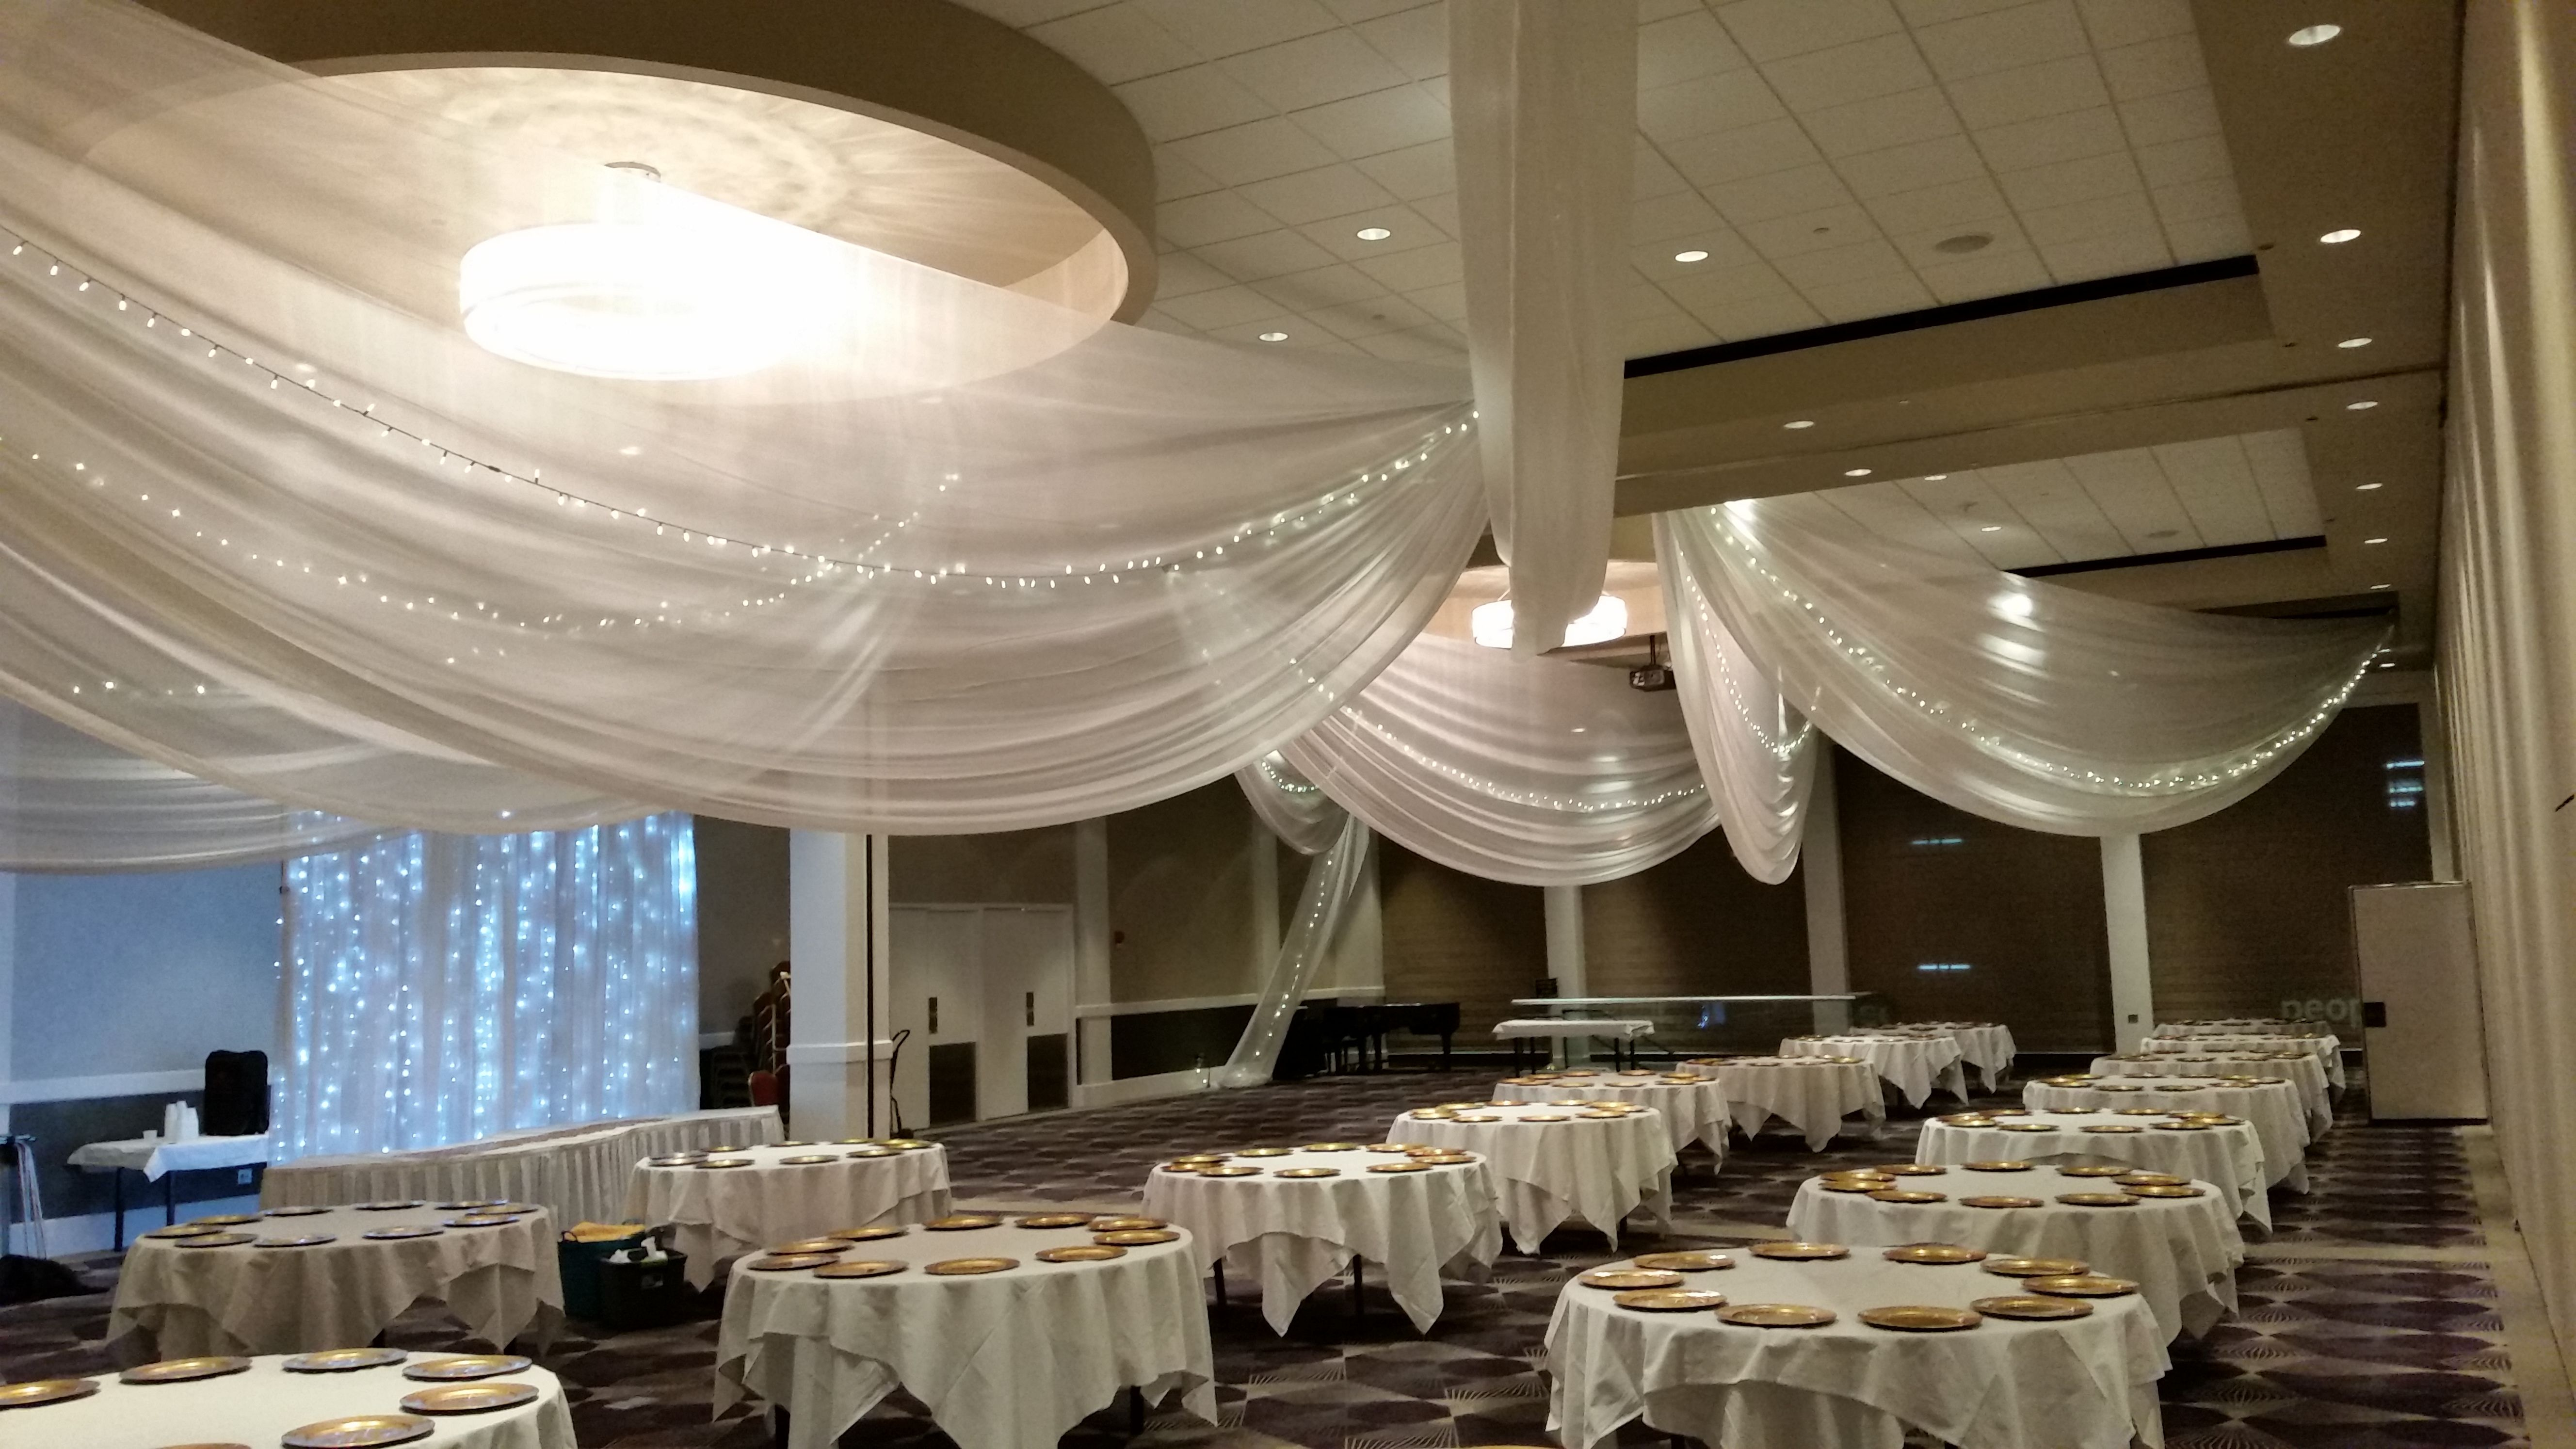 event rental any to your orange also los county pipe blank in and touch angeles space draping drapes an intimate this drape canvas a will img can create